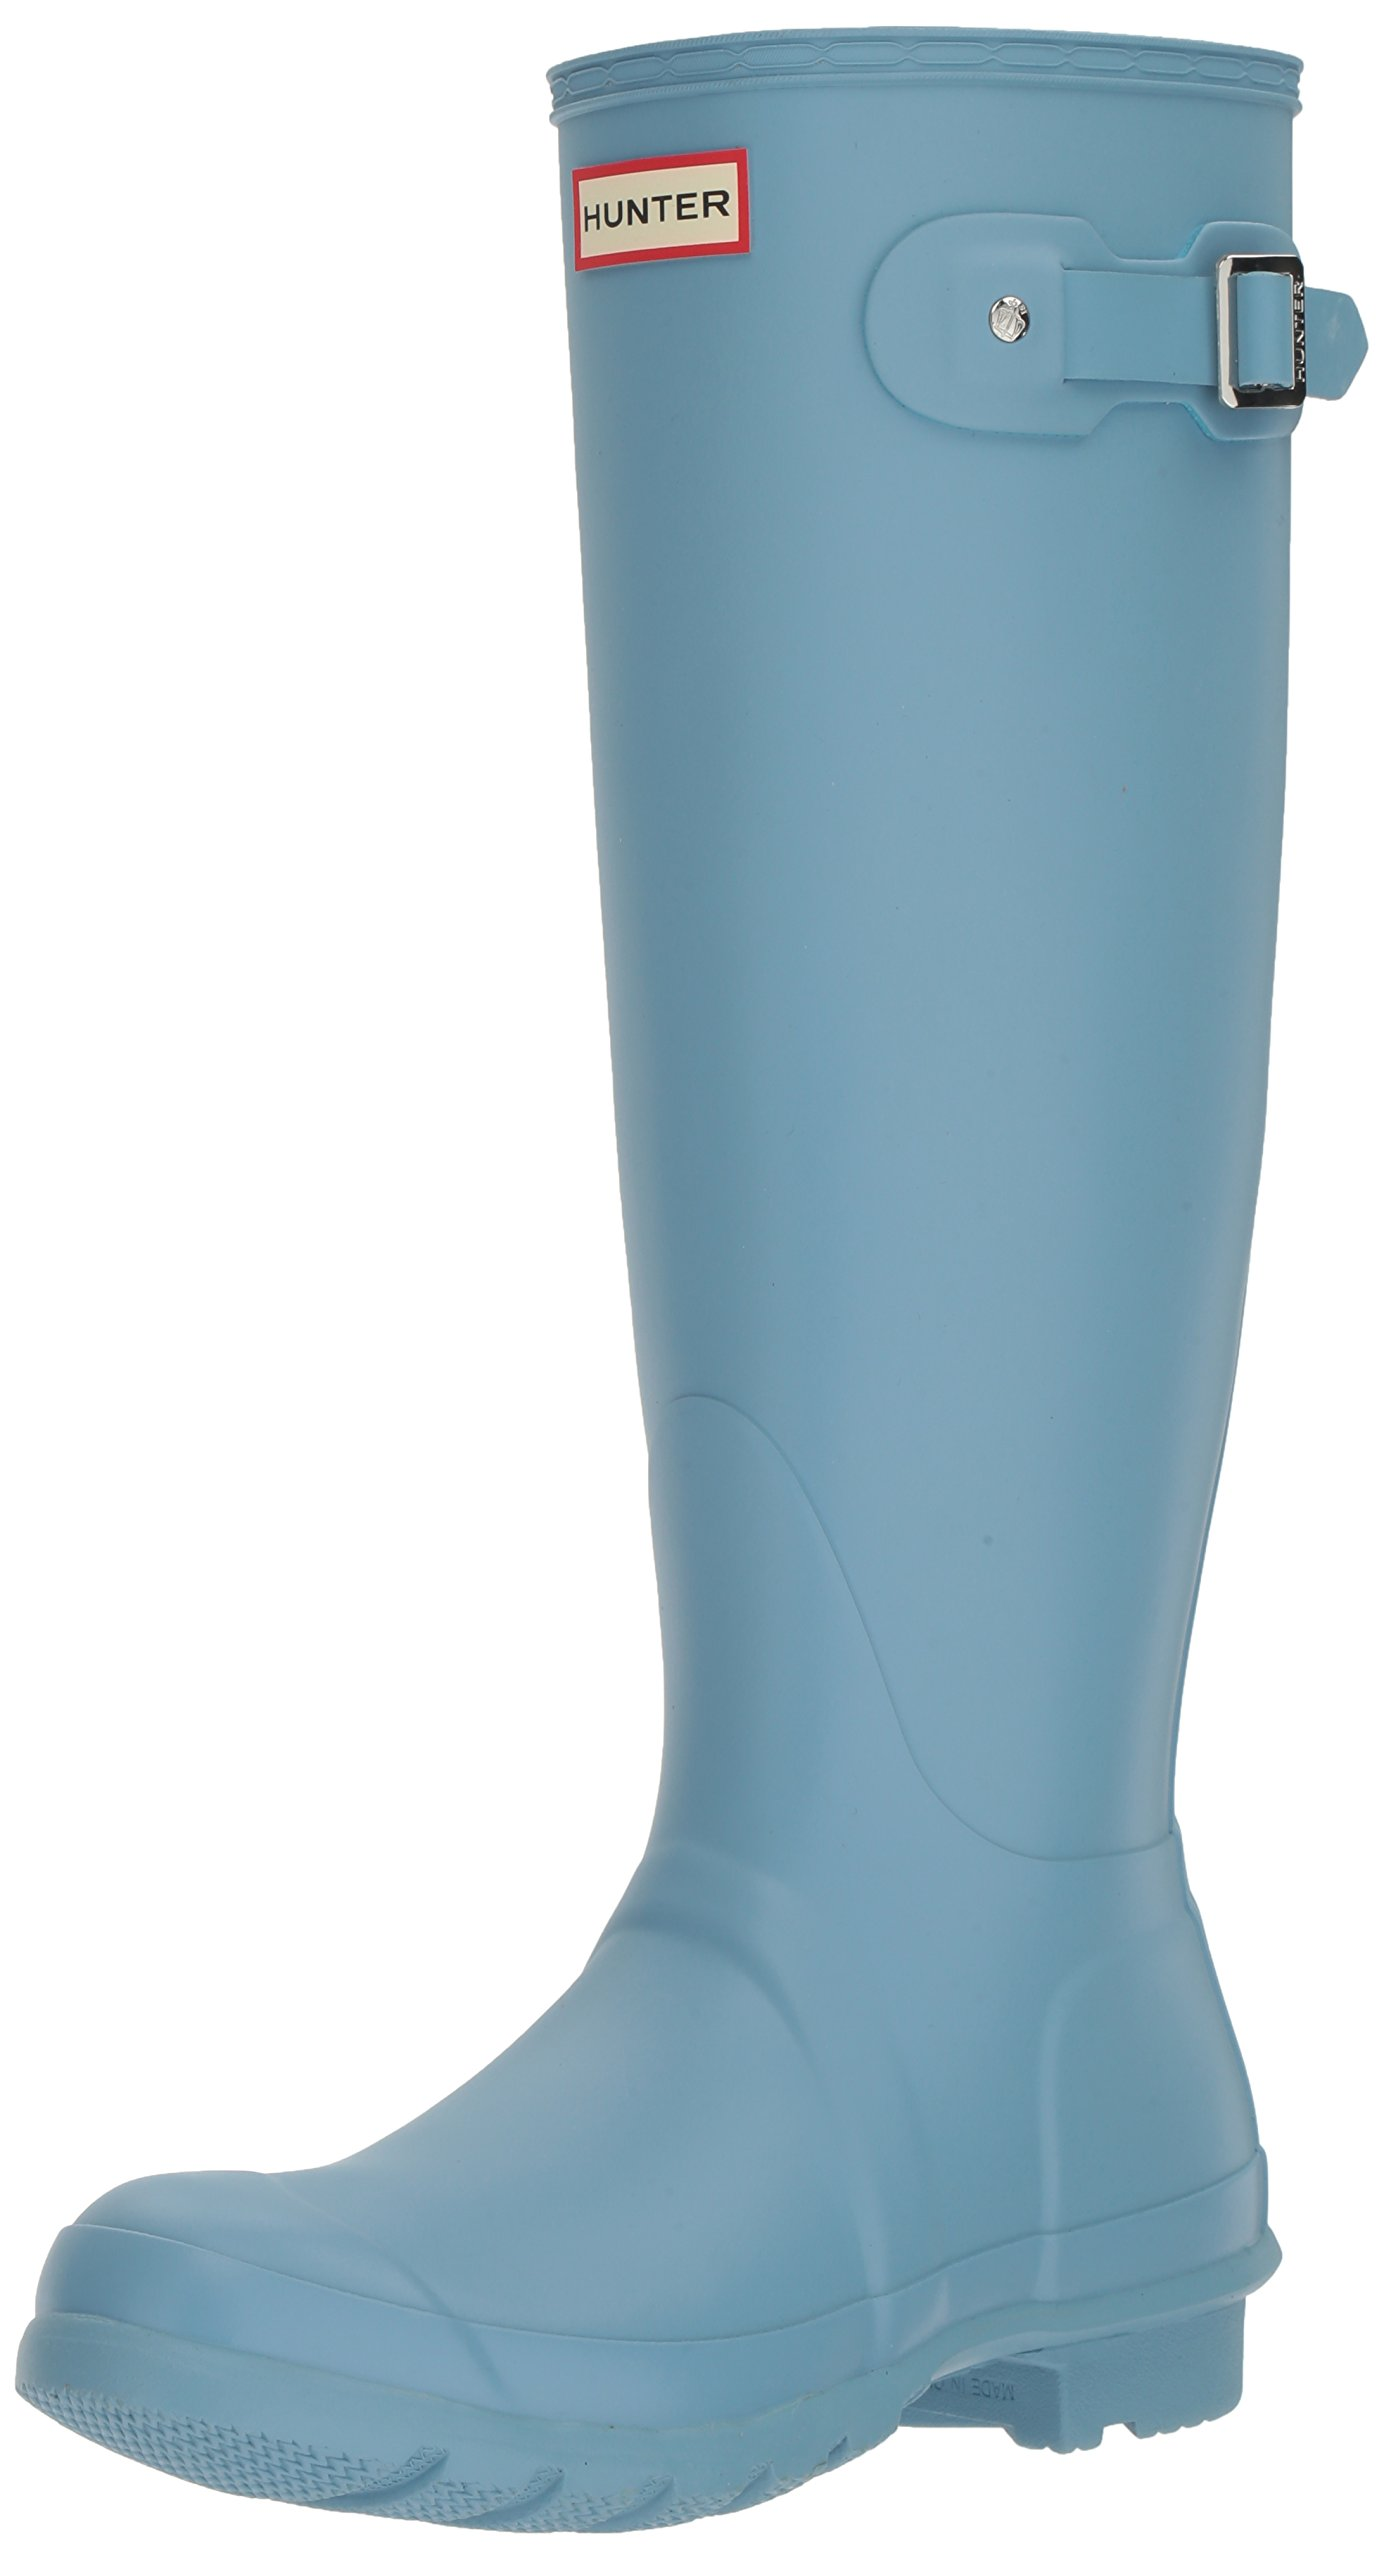 Hunter Women's Original Tall Wellington Boots, Blue - 9 B(M) US by Hunter